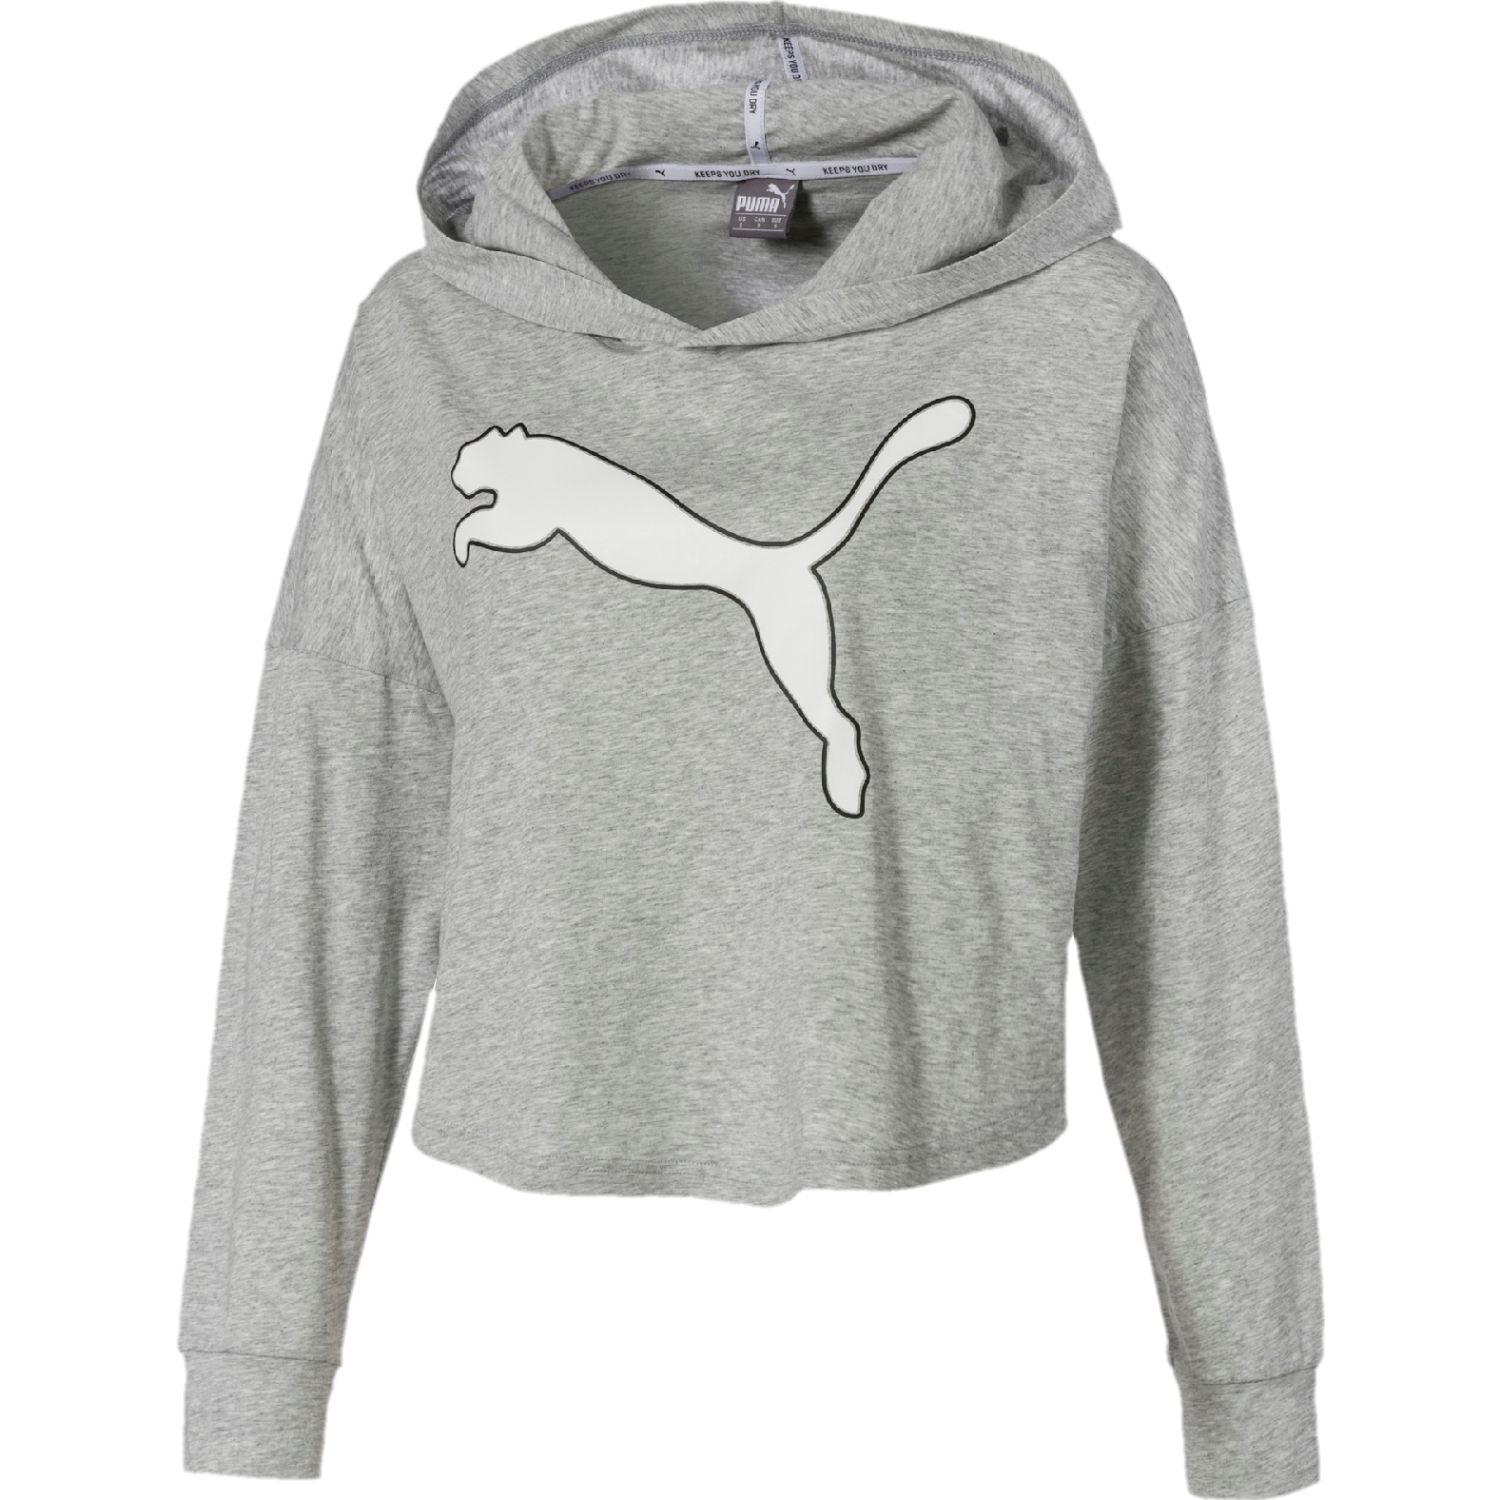 Puma modern sports cover up Gris Hoodies Deportivos